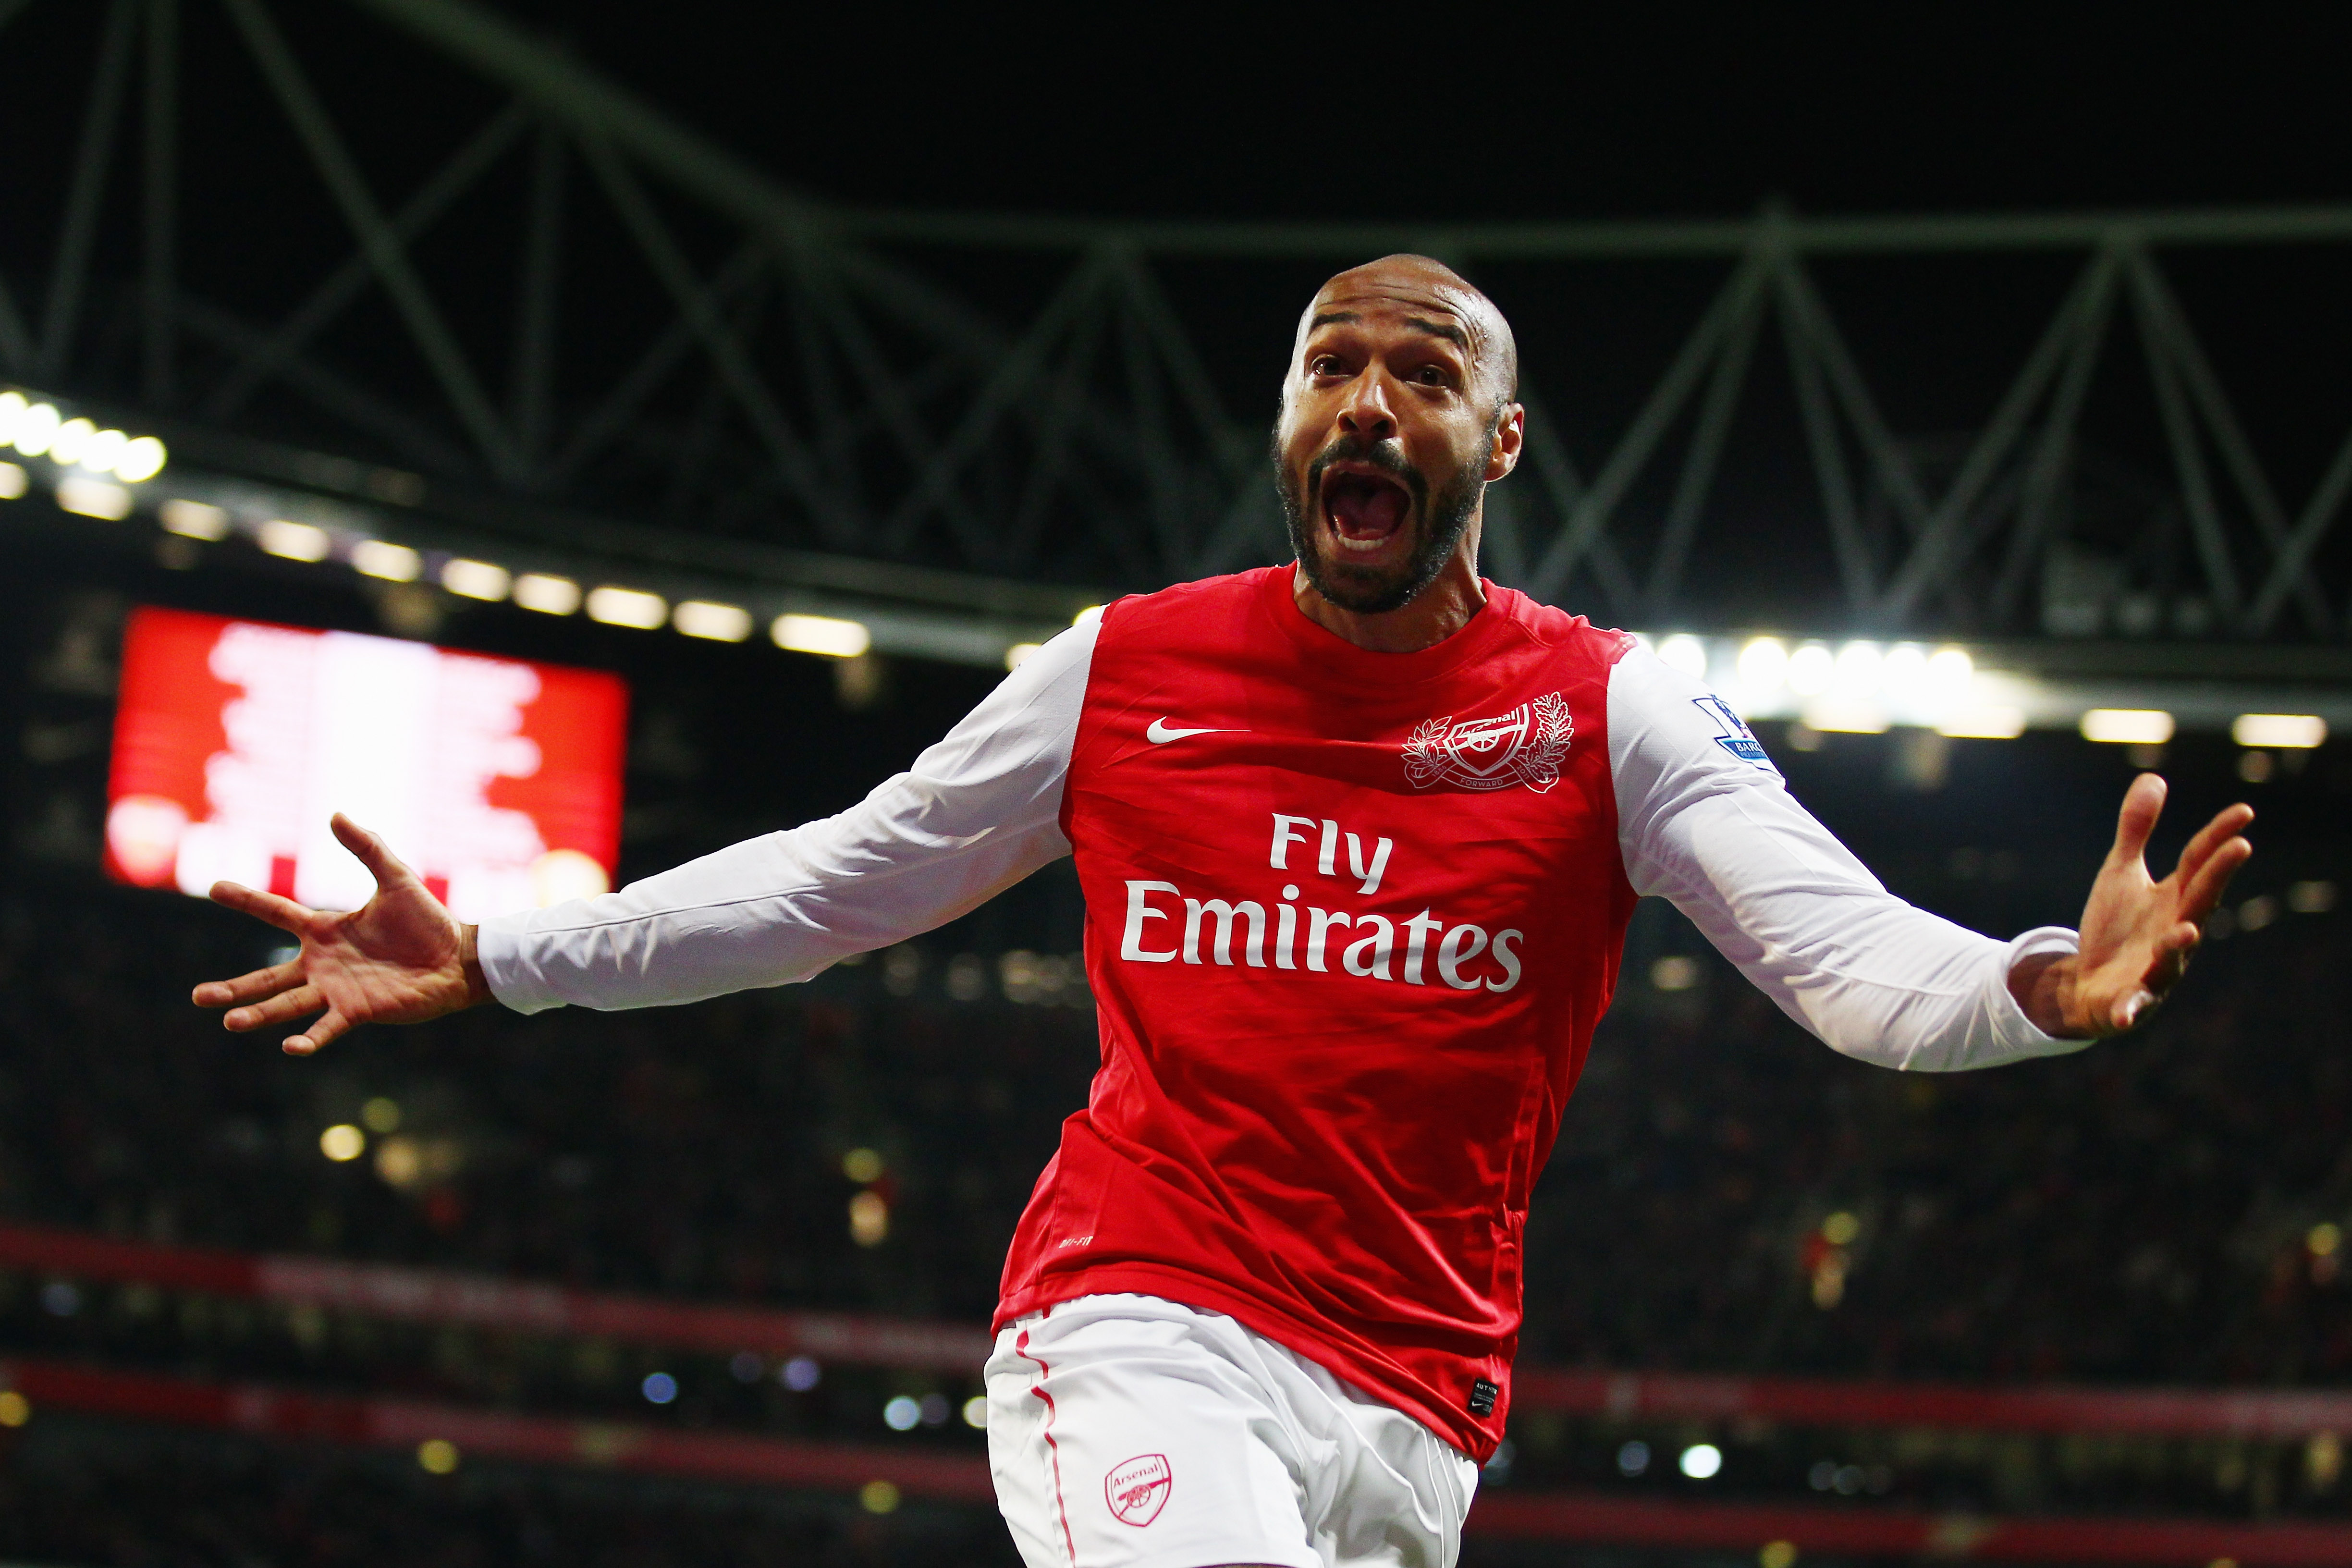 Thierry Henry I see the Invincibles in this Manchester United Team